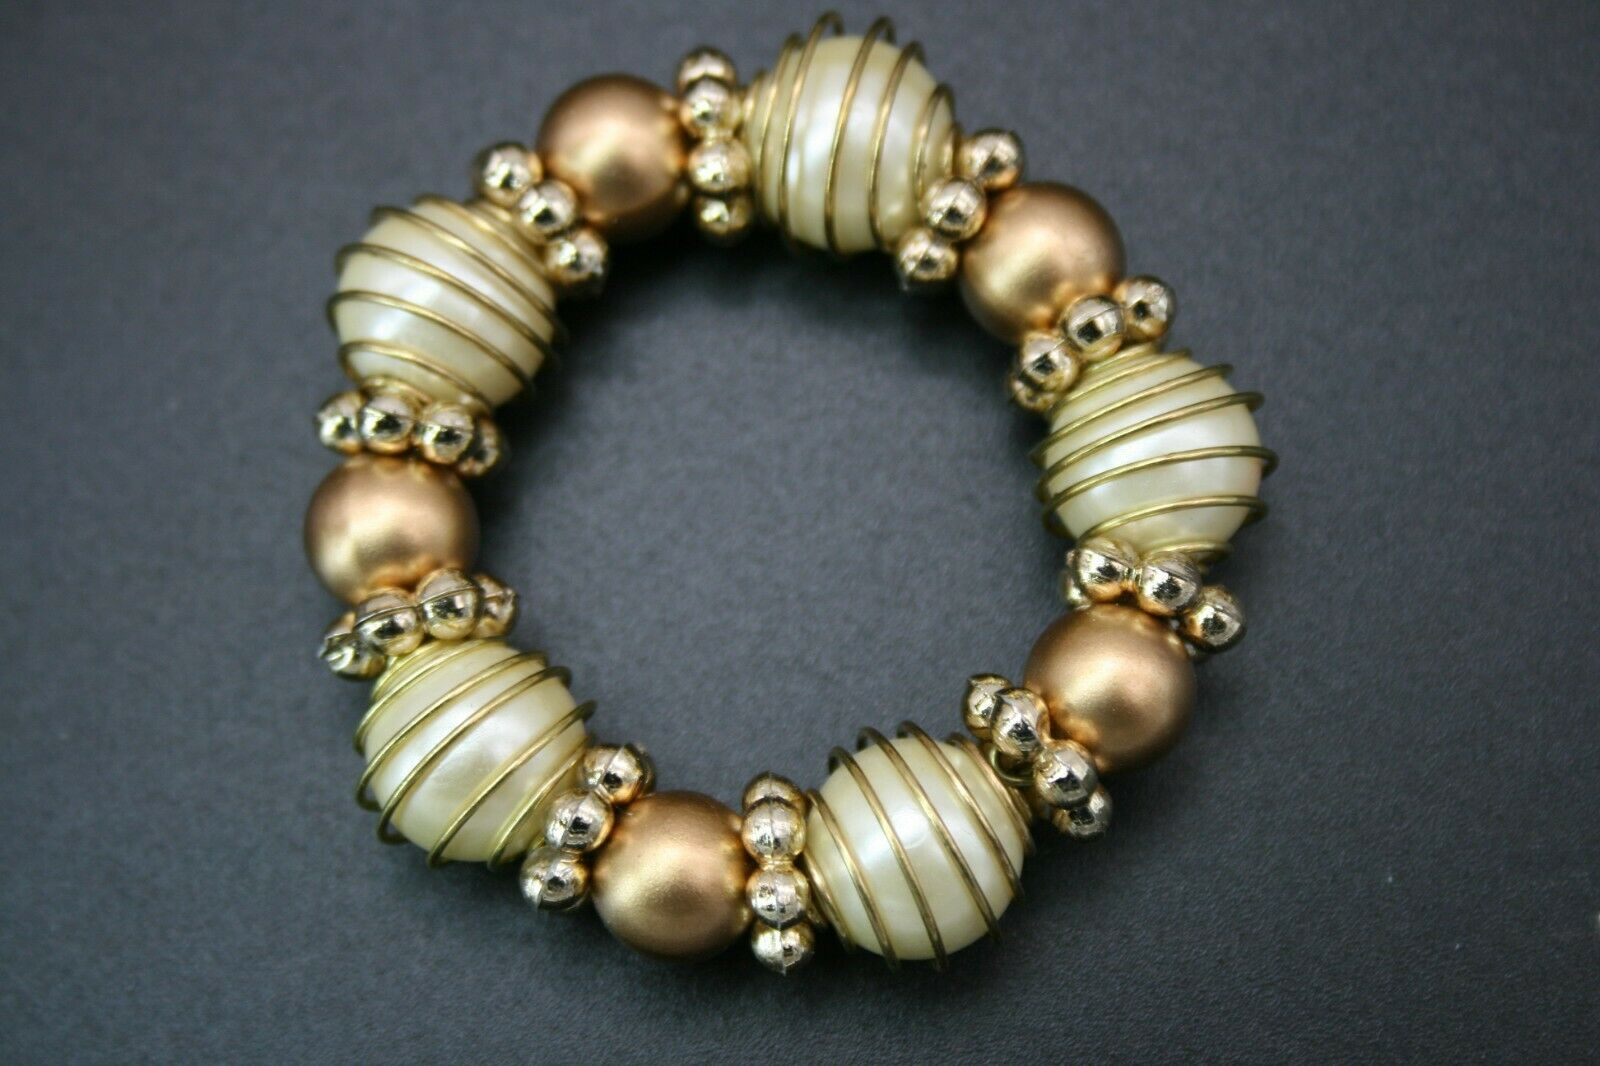 Set Of 11 Gold Silver Pearl Beaded Napkin Rings Great For Holidays Any Event For Sale Online